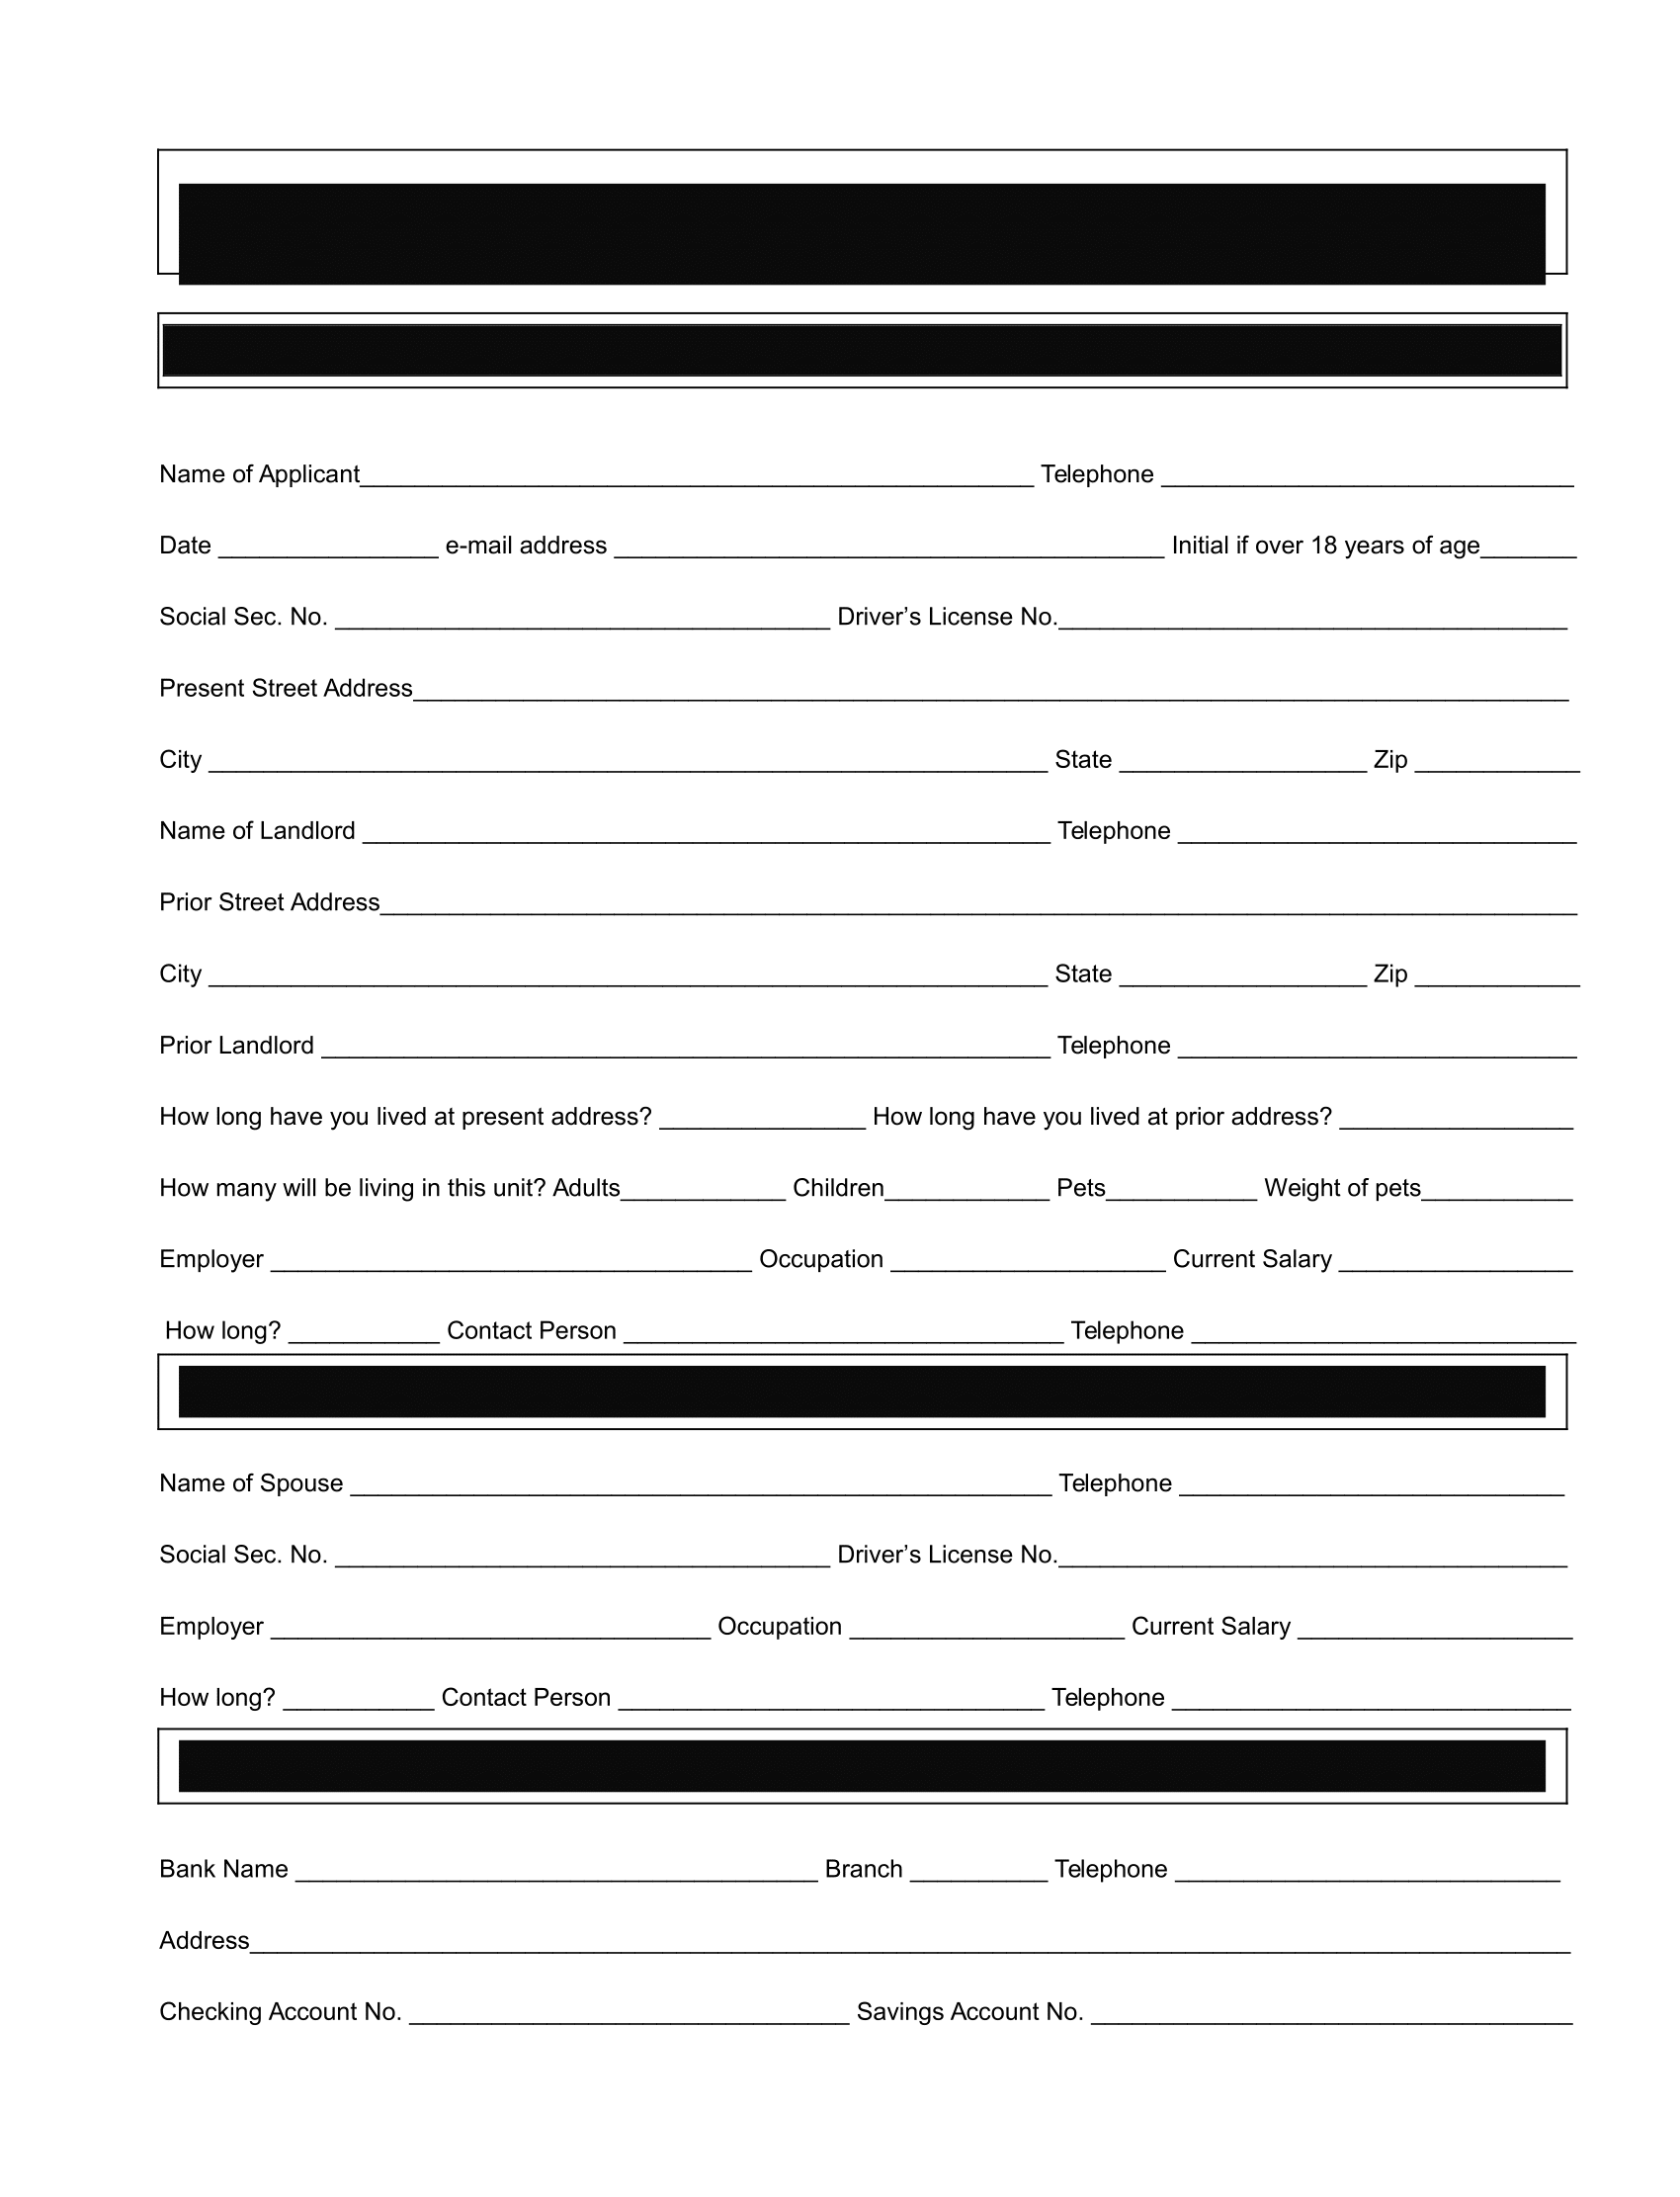 Rental Application Form – Download Free Template